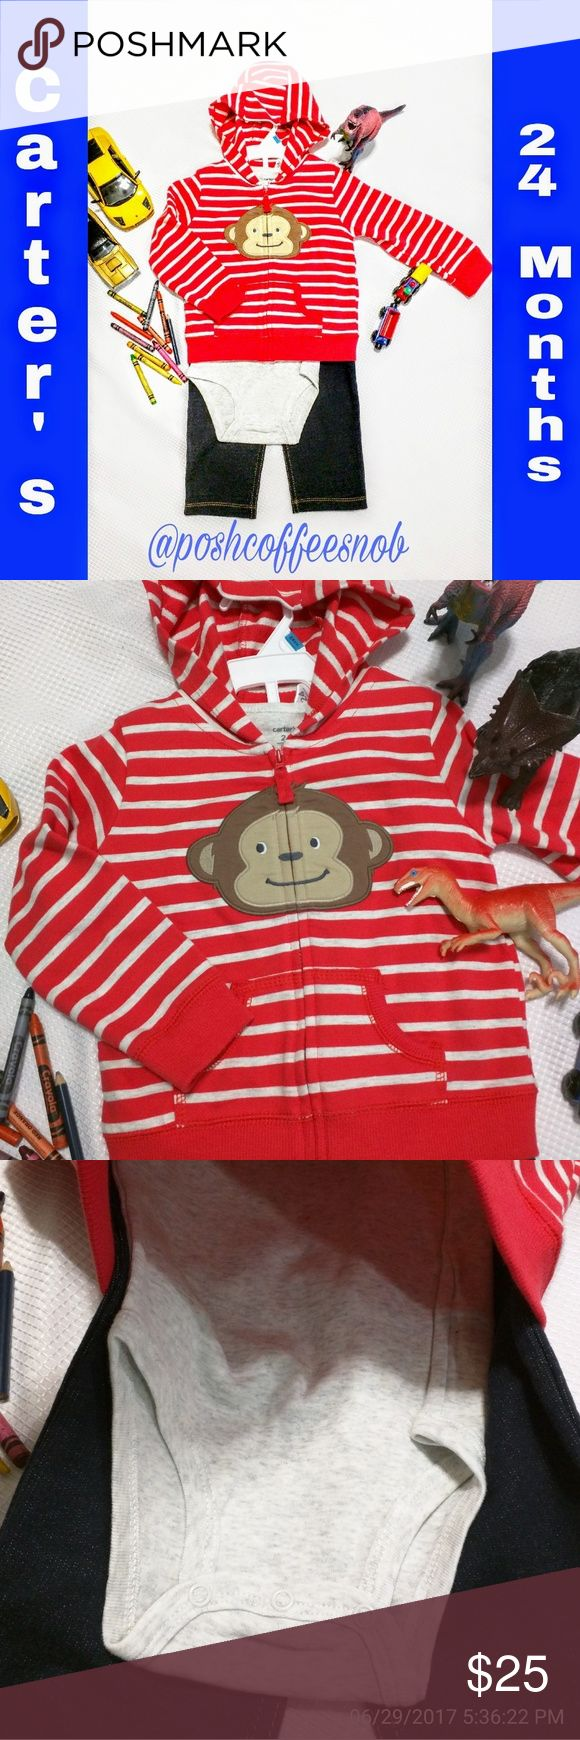 Carter's 3 Piece Boys Set Red and light gray striped zip up hoodie with a fun monkey face on the front. A light gray onesie and jeans that are more like soft jegging material. Feels like cotton. Carter's Matching Sets